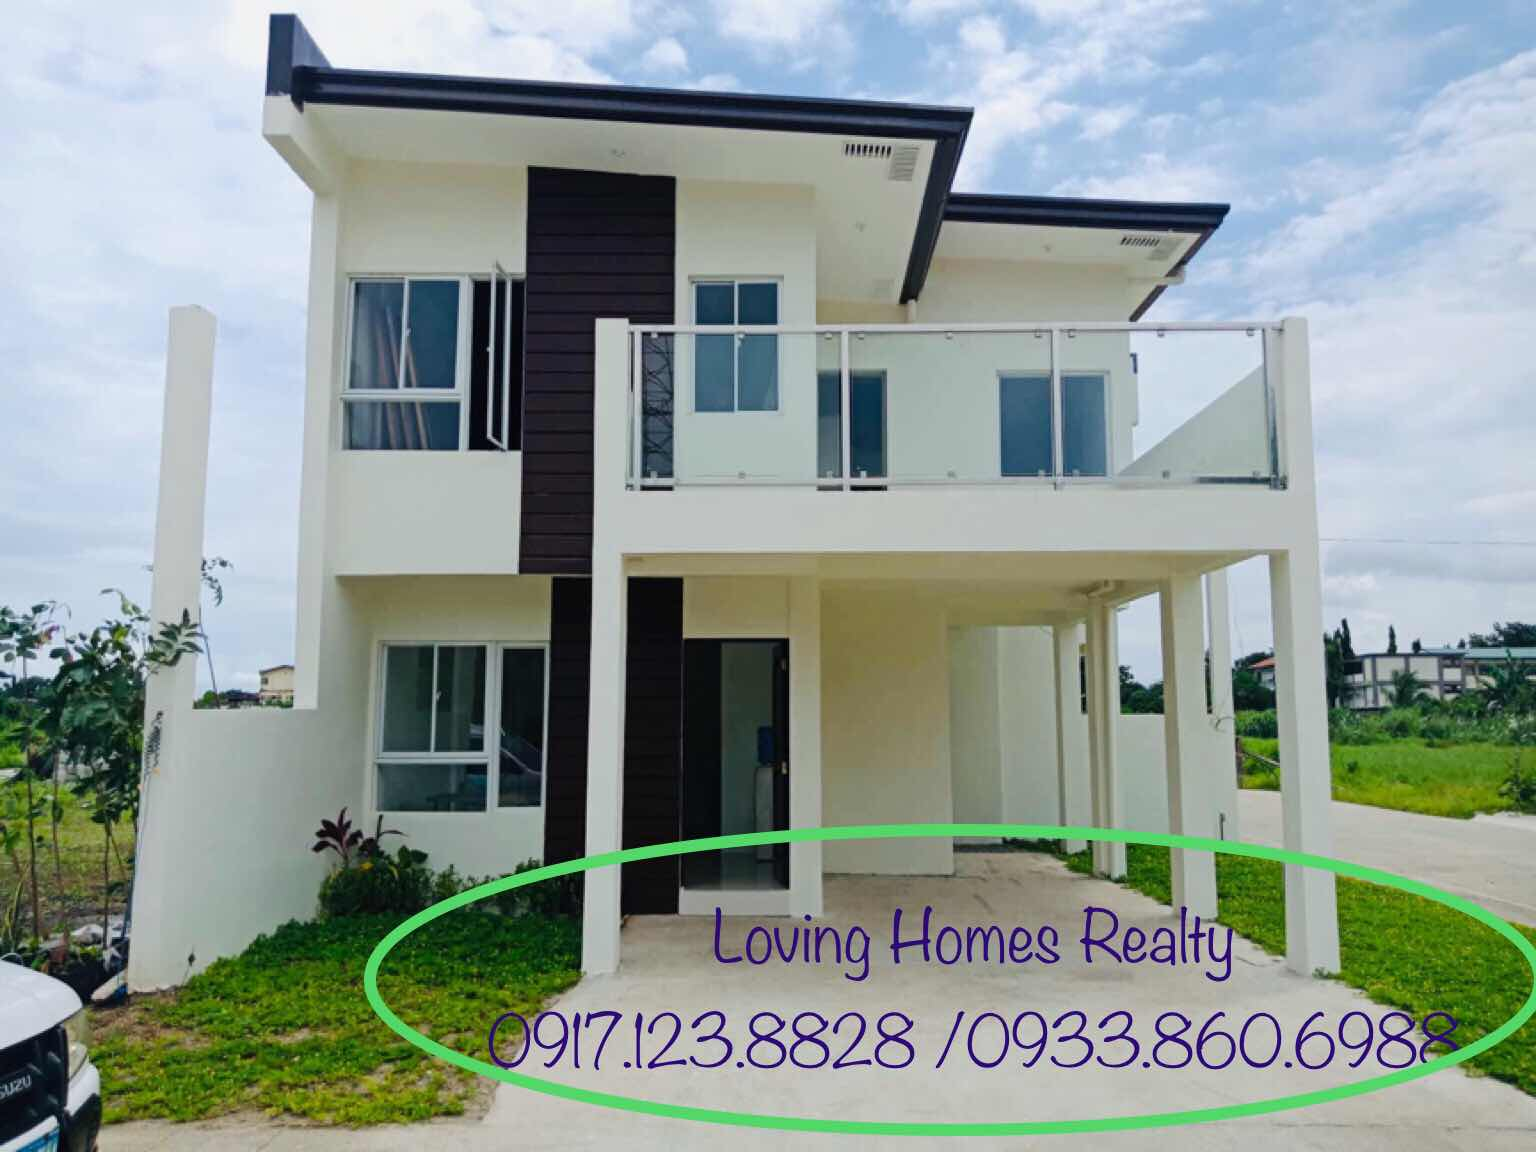 ROSE POINTE SUBDIVISION HOUSE AND LOT SALE IN STA ROSA LAGUNA RENT TO OWN HOUSE INSTALLMENT HOMES LAGUNA 1